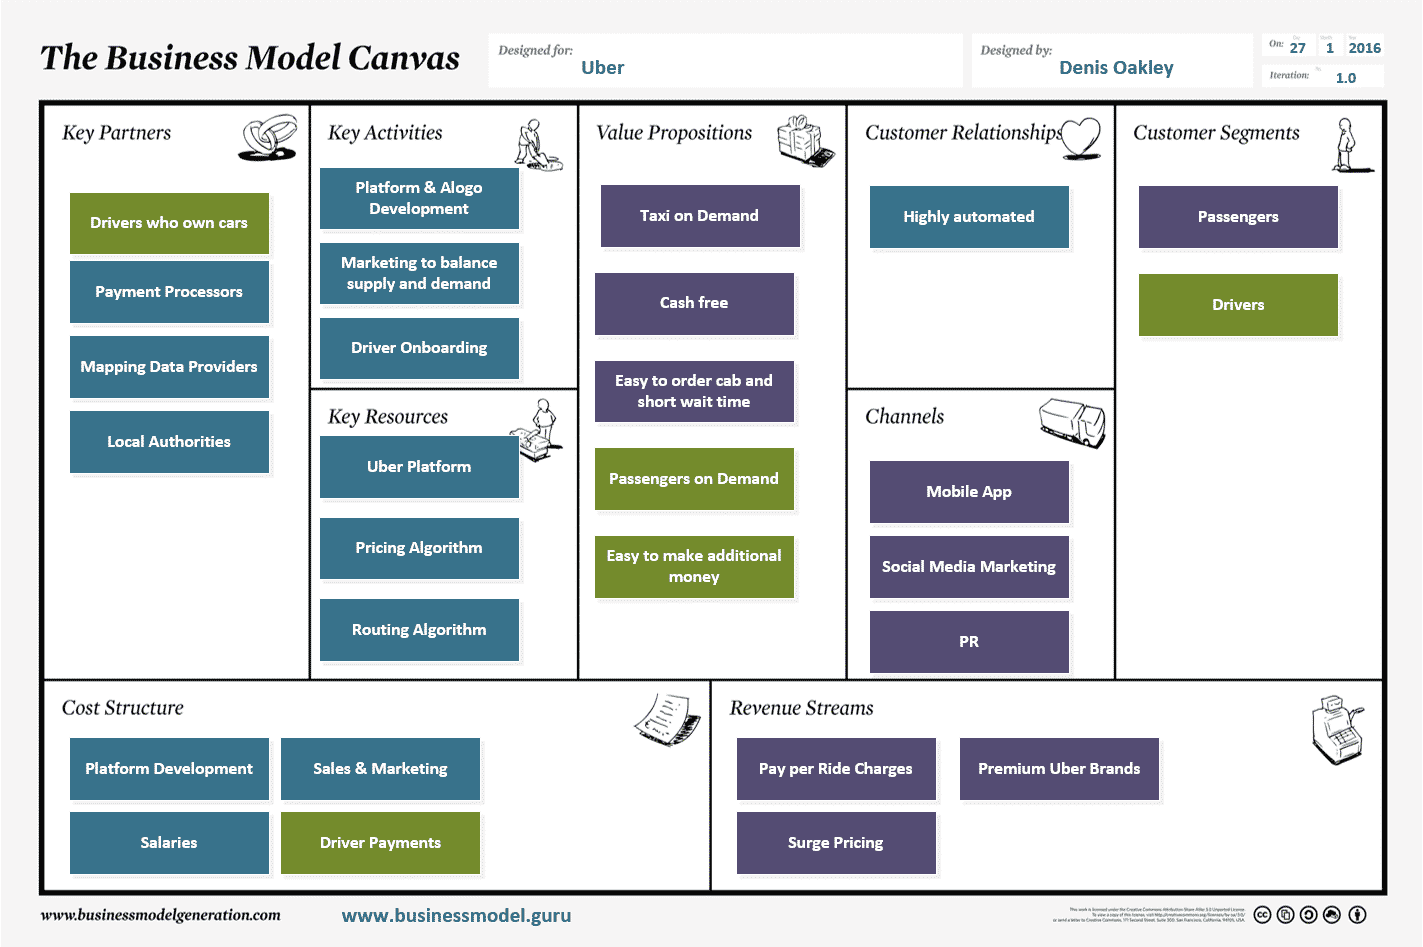 Uber Business Model Canvas